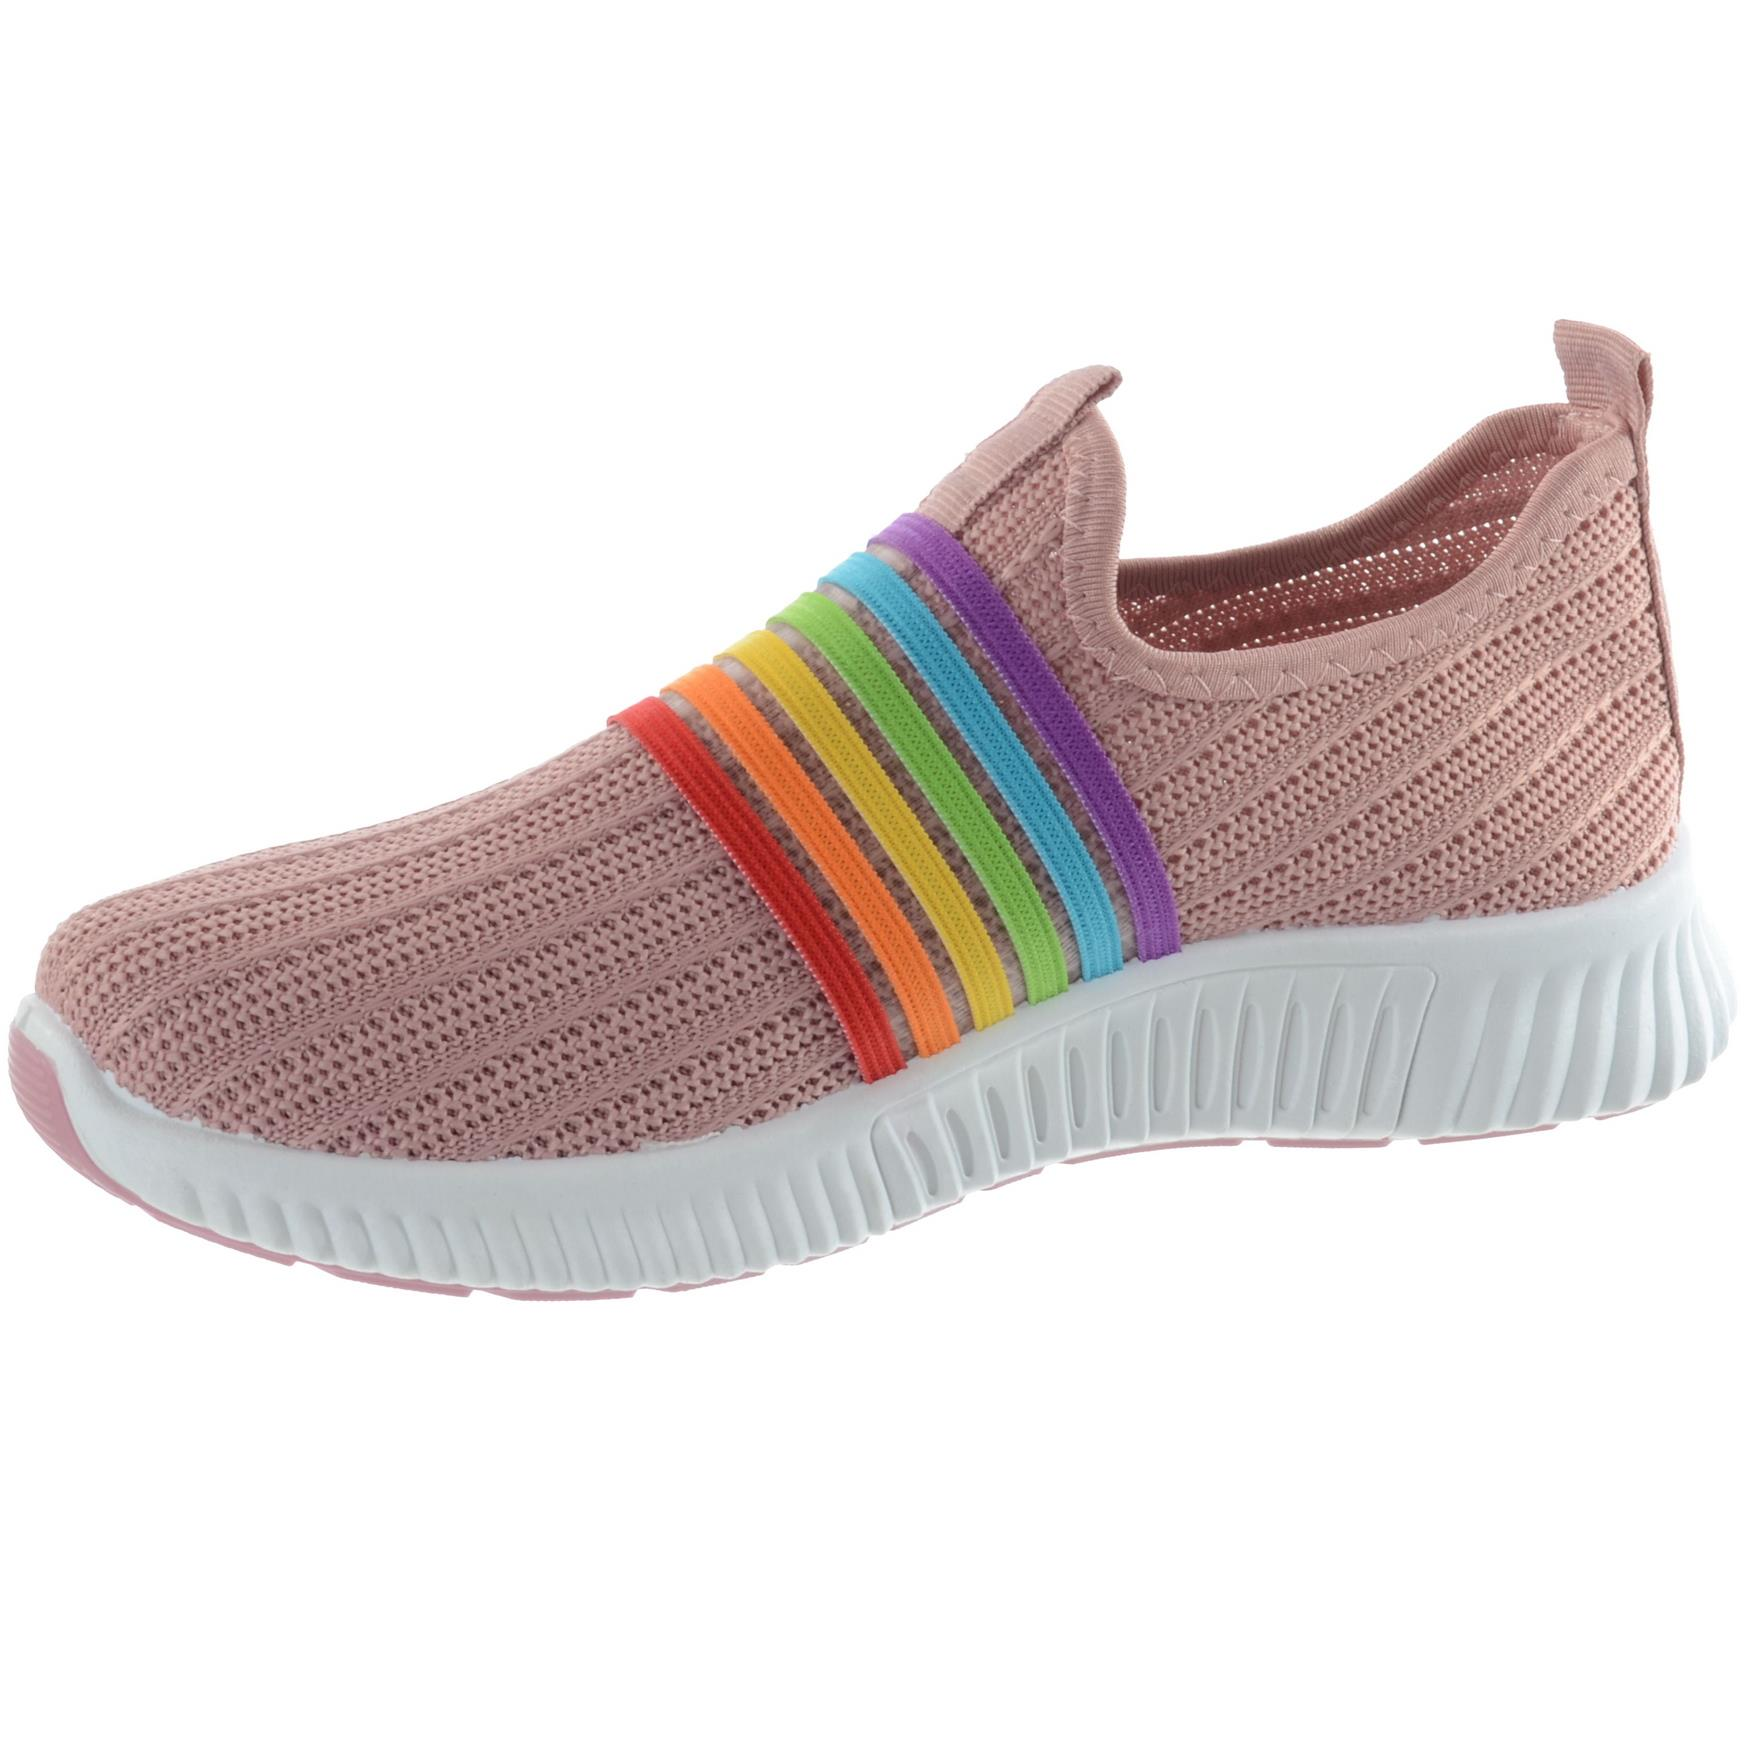 WOMENS LADIES SLIP ON COMFY CASUAL RAINBOW KNIT SNEAKERS TRAINERS PUMPS SIZE